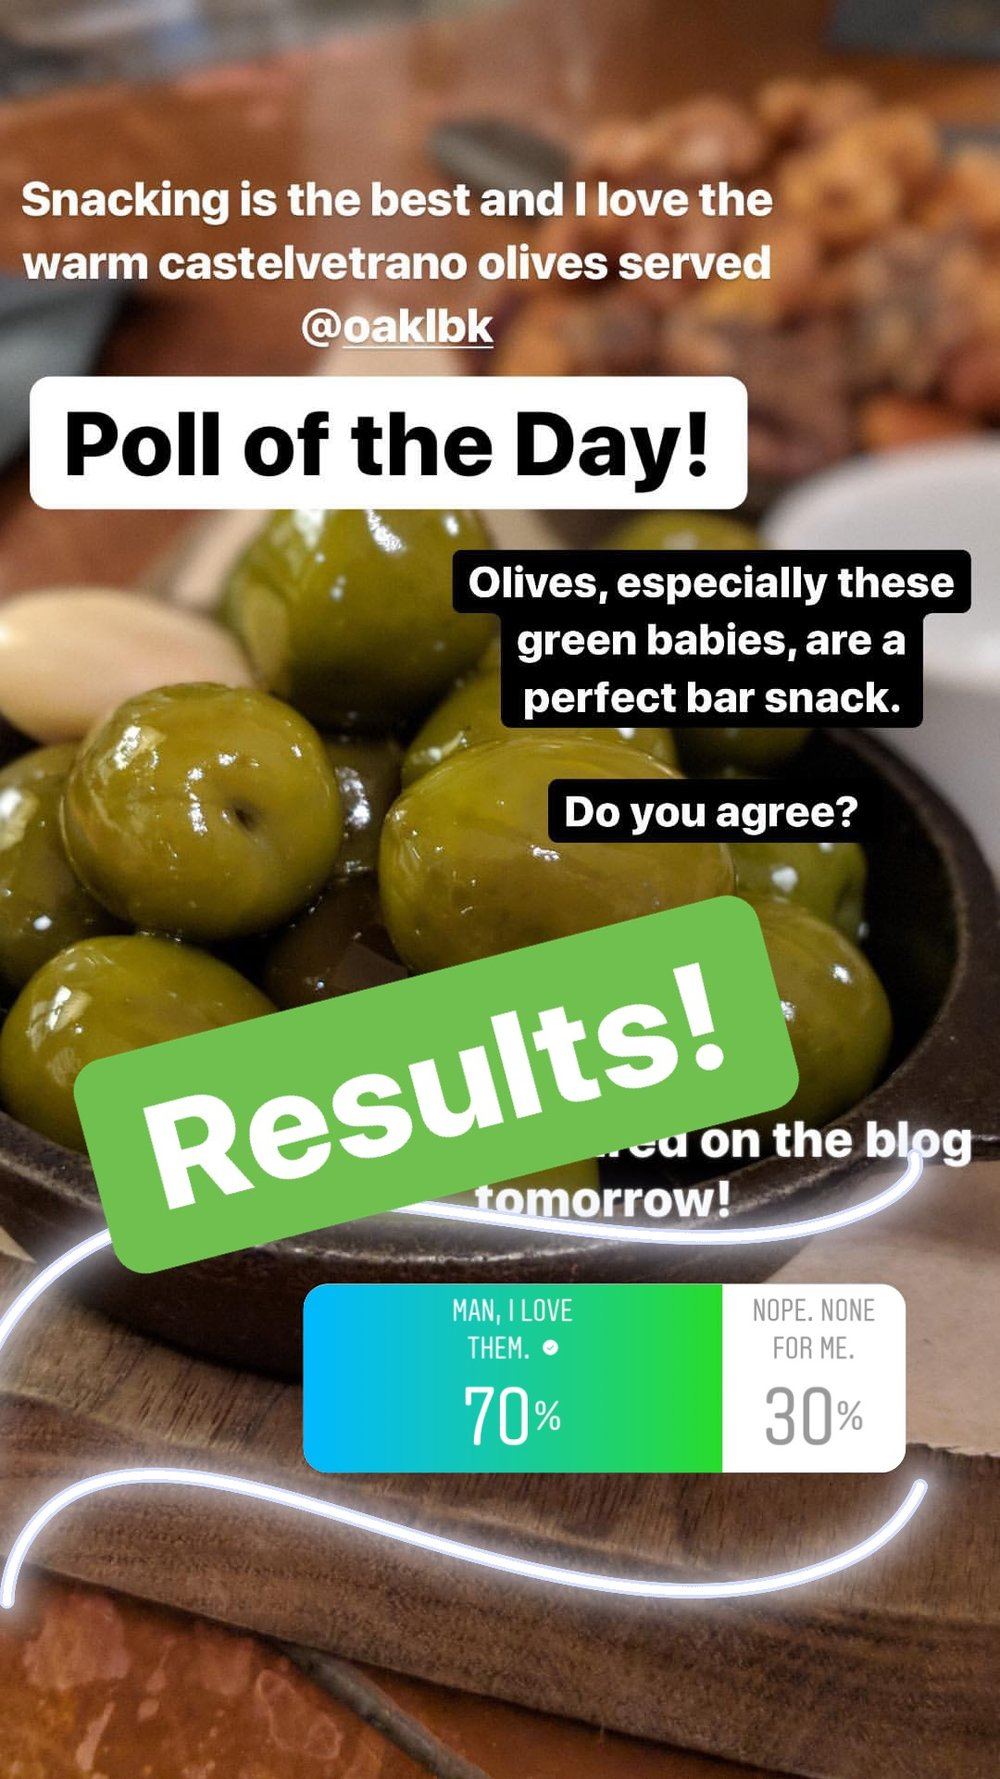 Love the balance (or lack there of) on this one! And am so glad to see so many of you are firmly in the pro-olive camp. I do understand that some aren't big fans, as I wasn't for a long time, but as soon as I tried the bright green castelvetrano ones during our honeymoon, I was sold! So glad that they are on the menu at The Oak Bar, where we often have them along with one of their fantastic cocktails. Cheers!